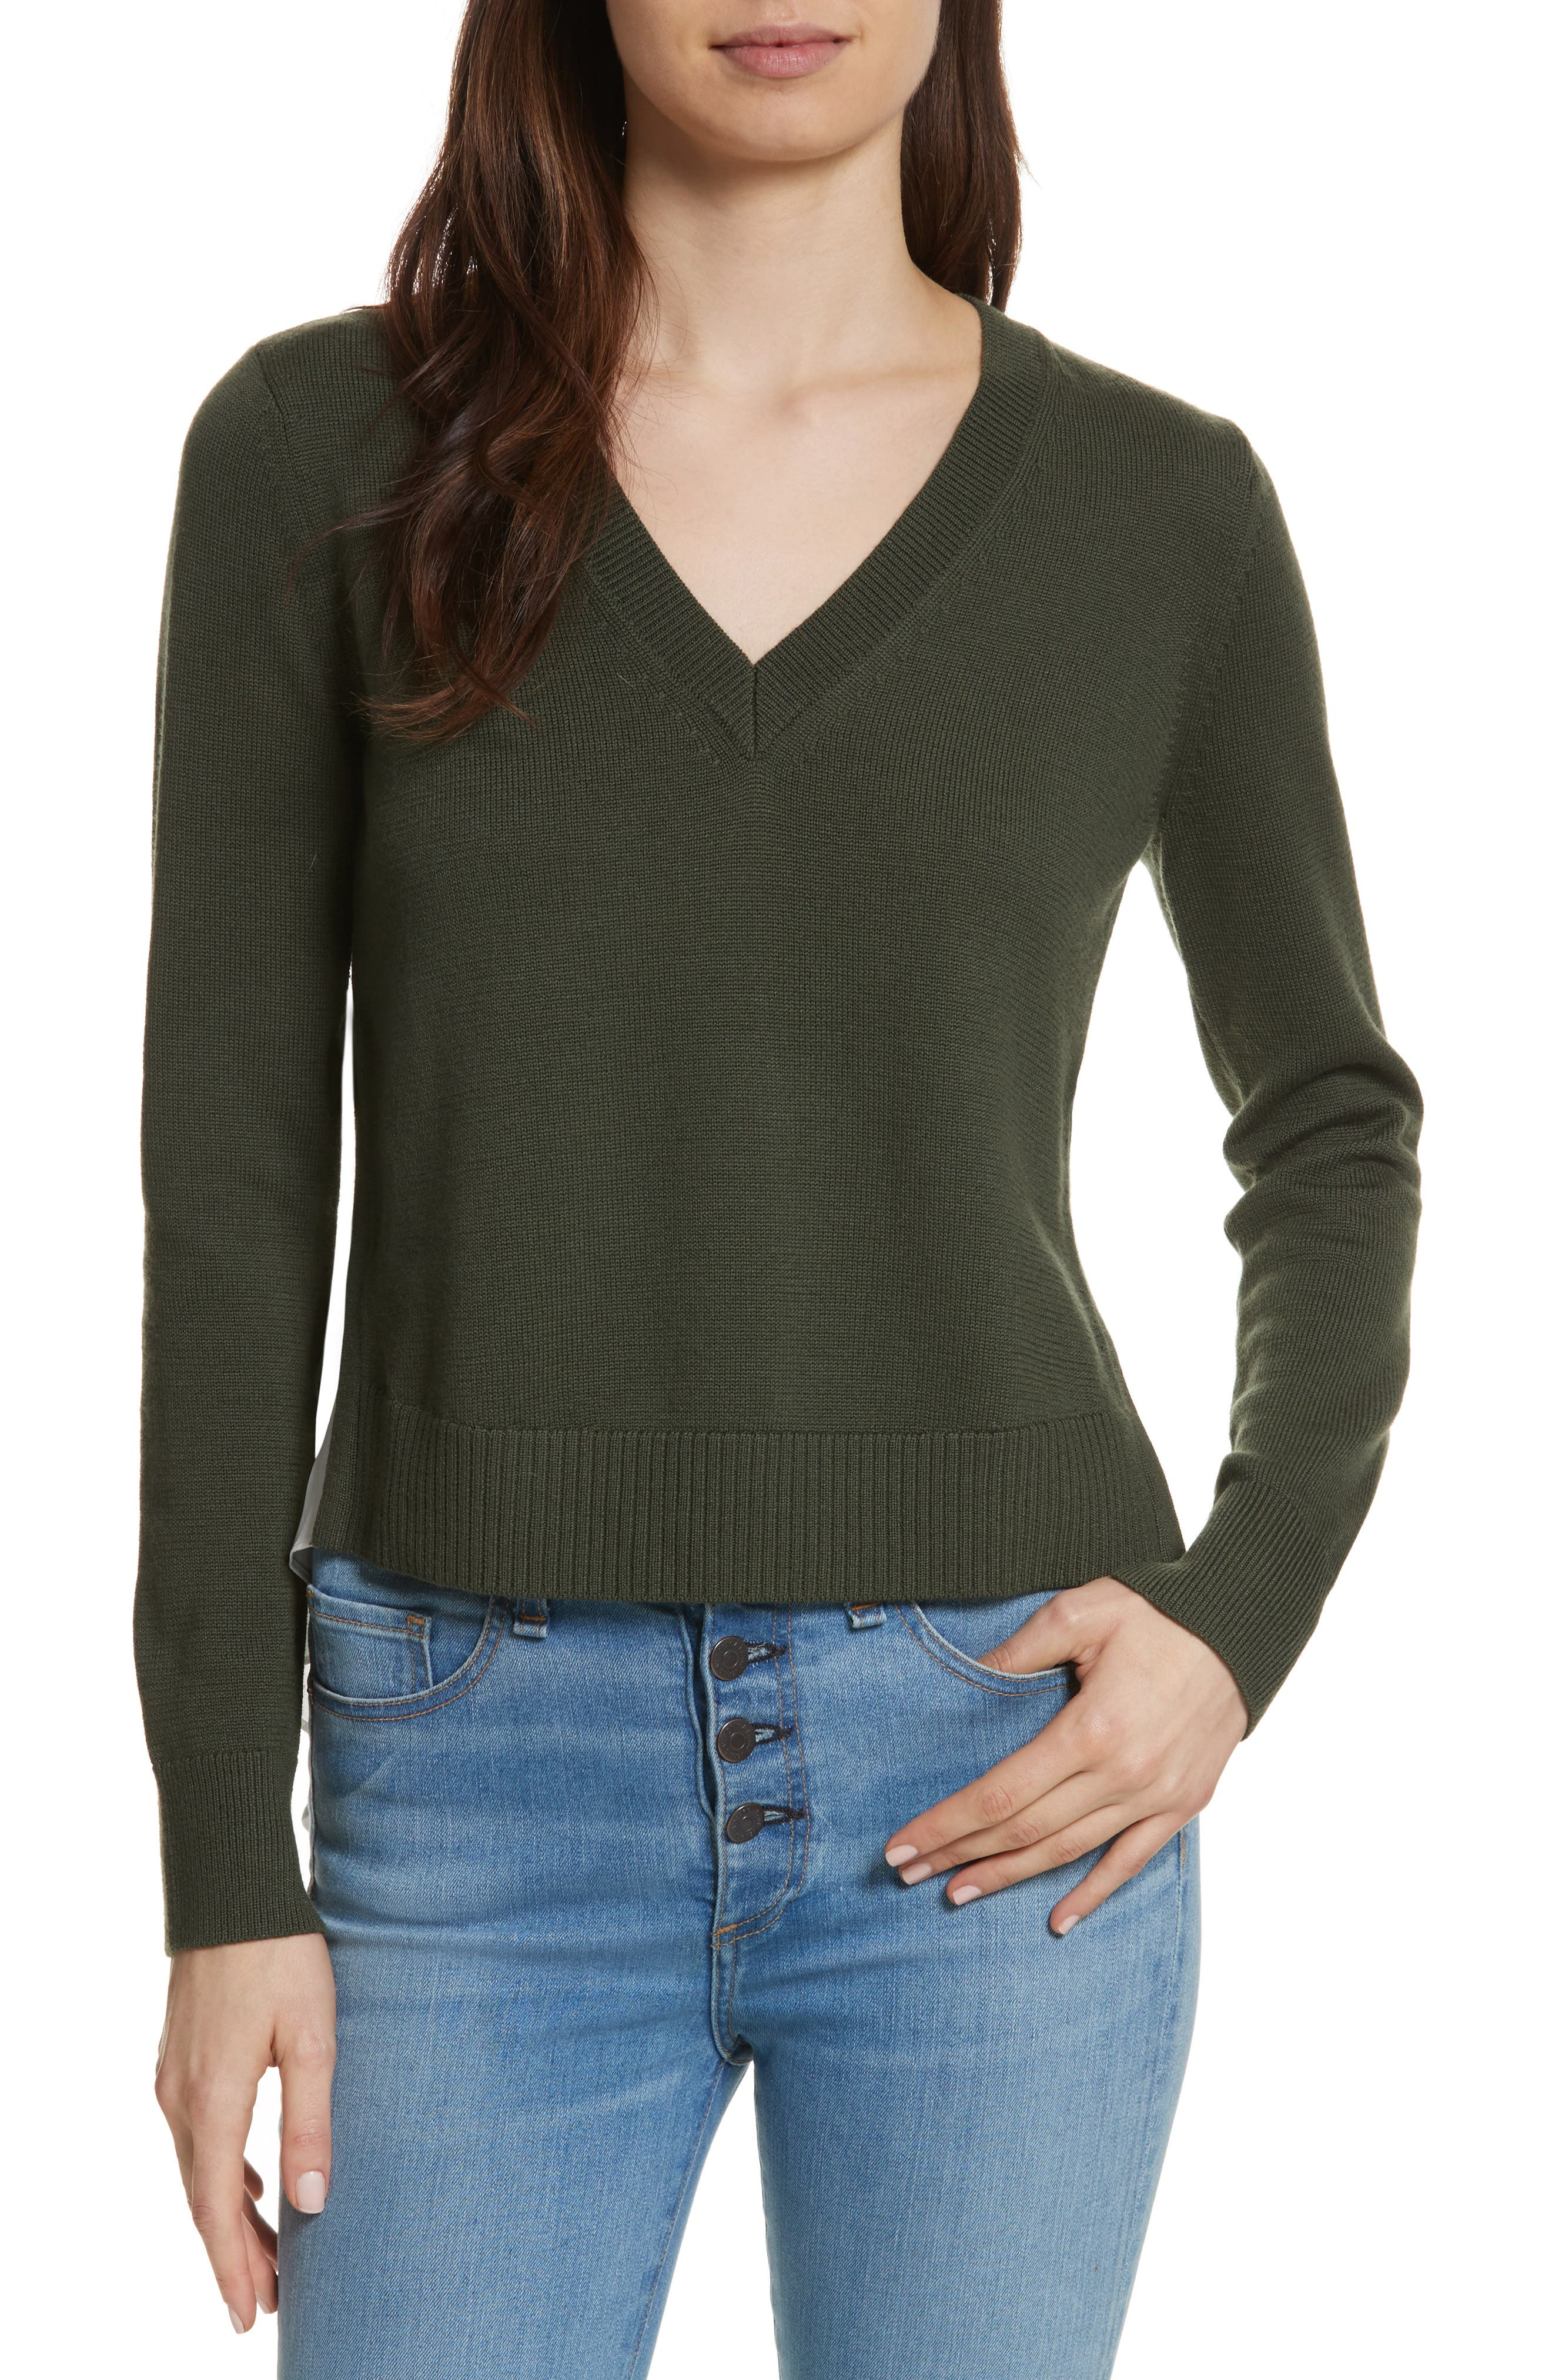 Alternate Image 1 Selected - Veronica Beard Concord V Neck Mixed Media Sweater